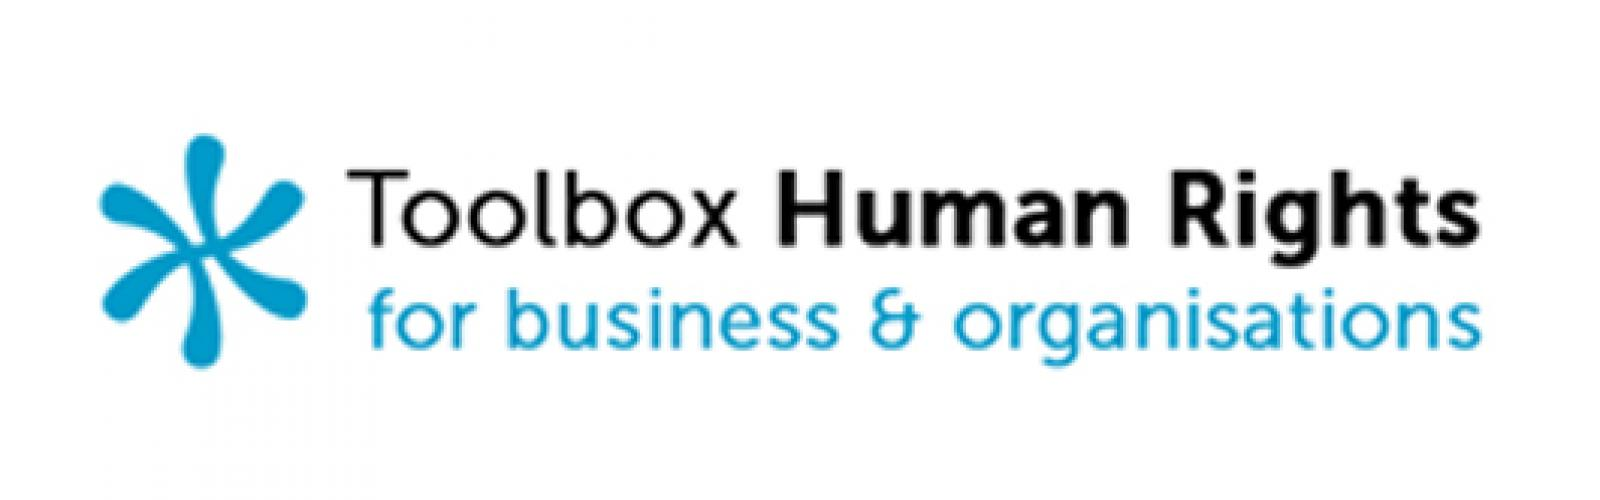 logo Toolbox Human Rights FIDO